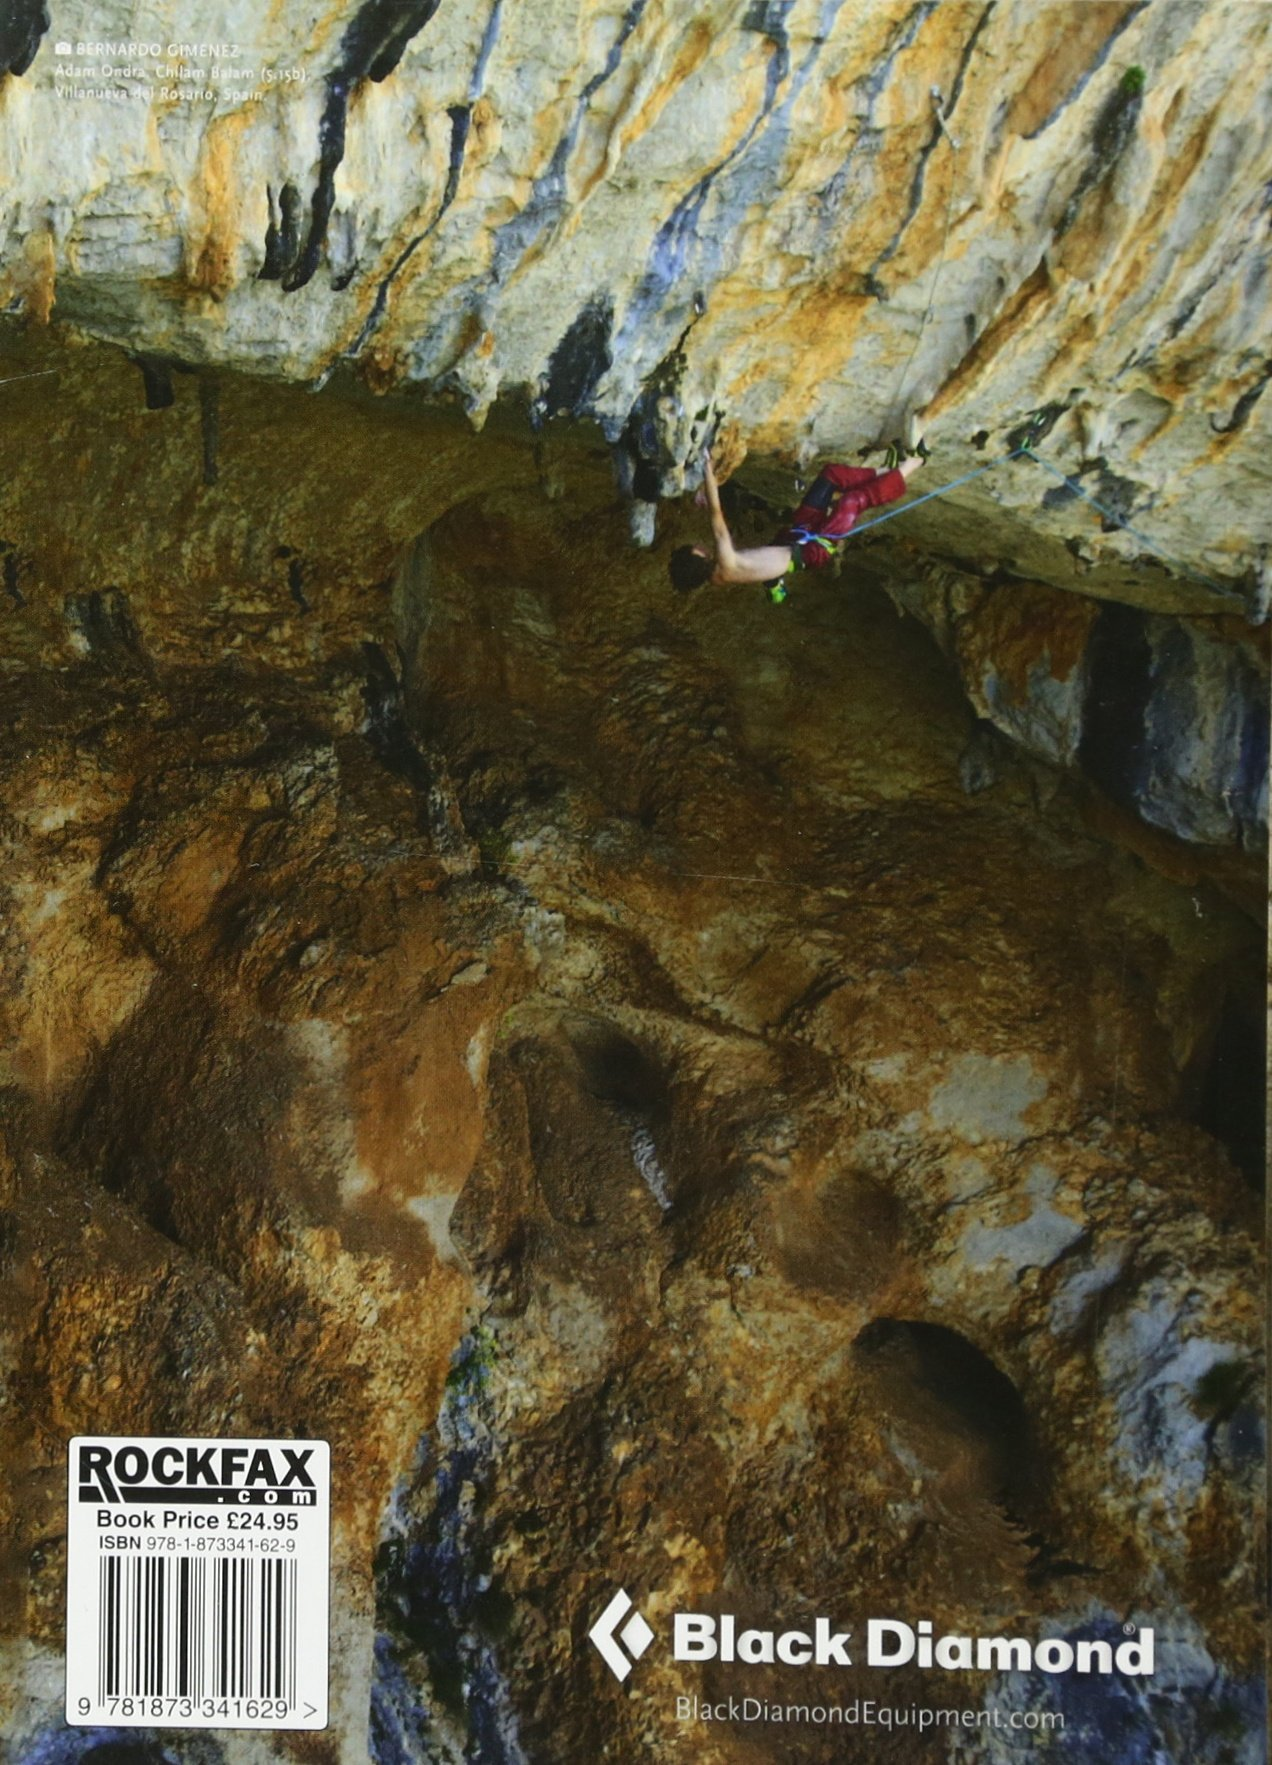 France: Languedoc - Roussillon: Rock Climbing Guide Rockfax ...